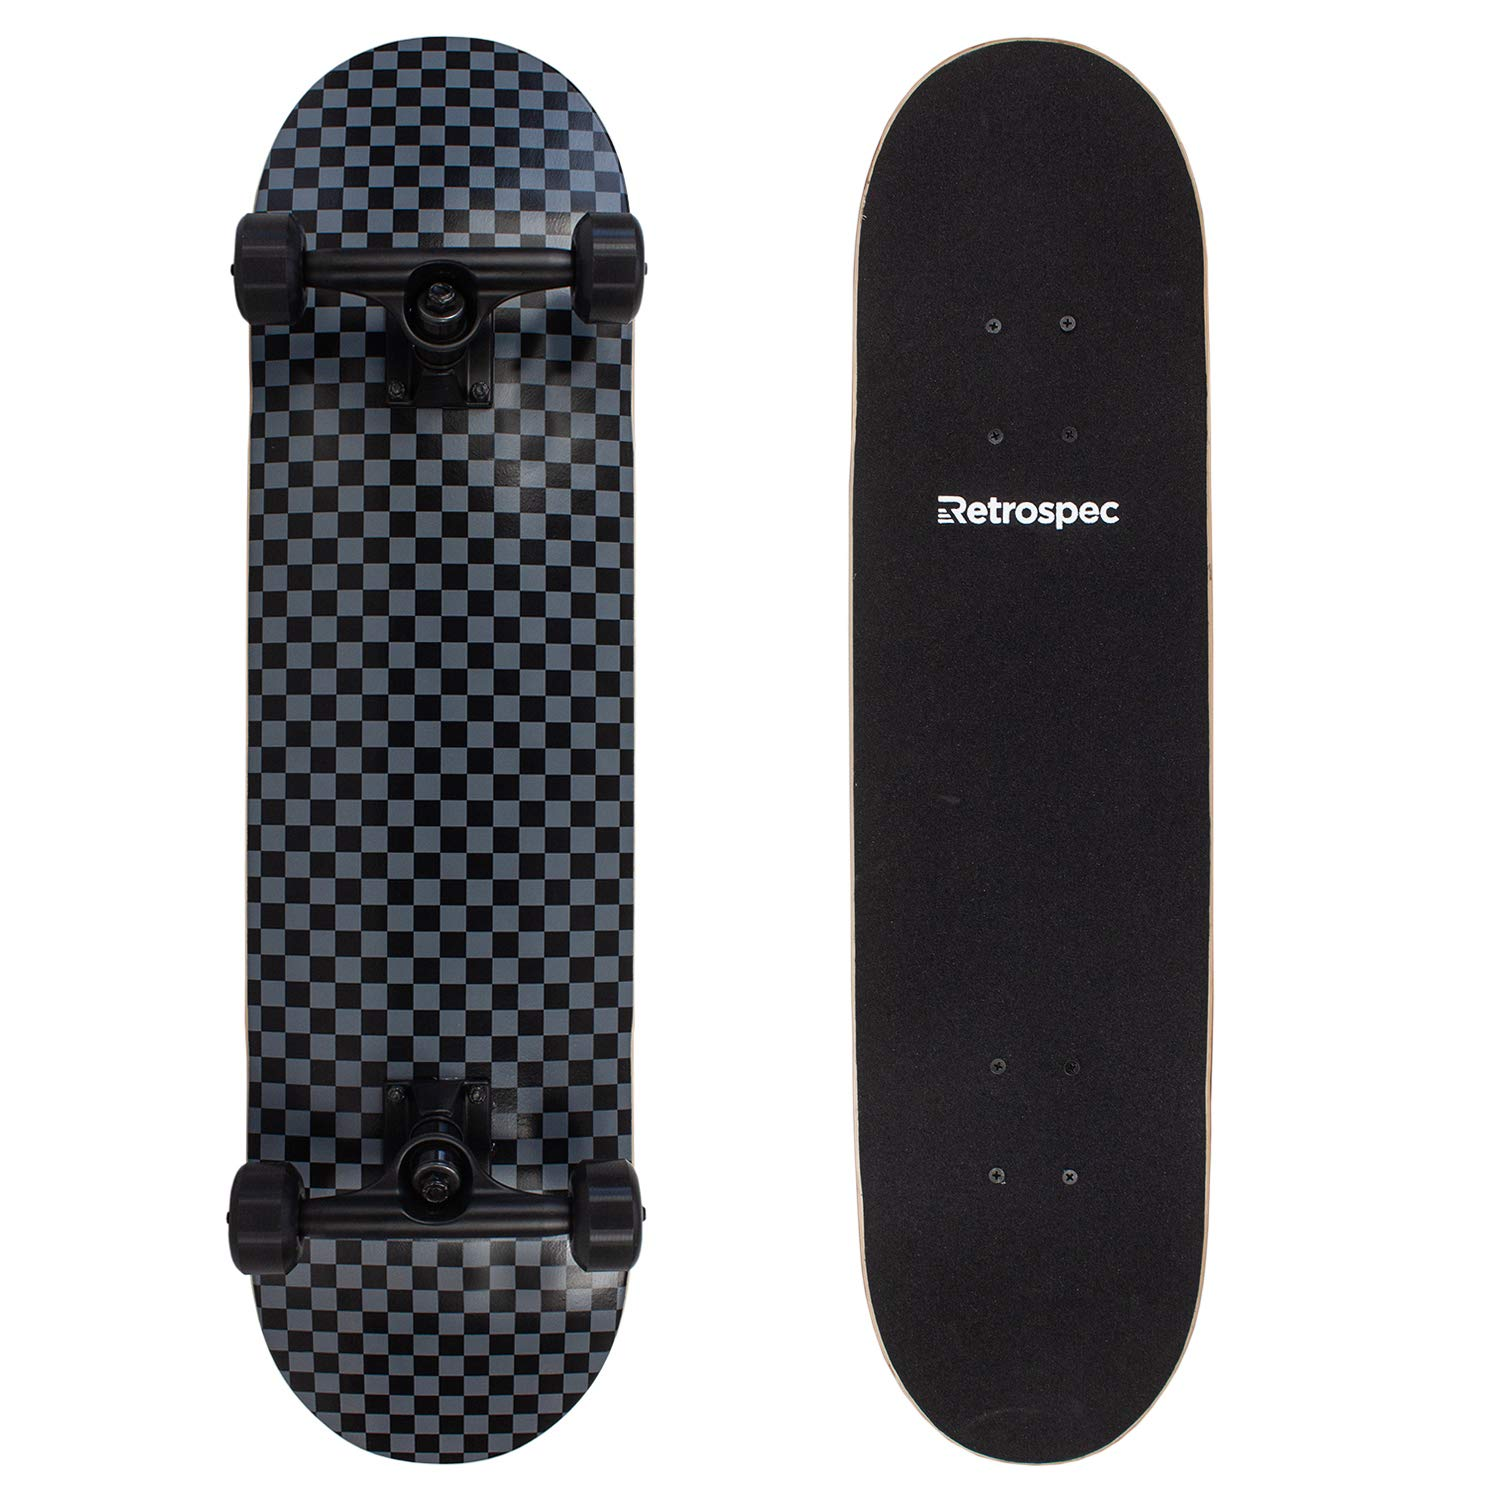 Retrospec Alameda Skateboard Complete with Abec-11 & Canadian Maple Deck, Black/Gray Checker